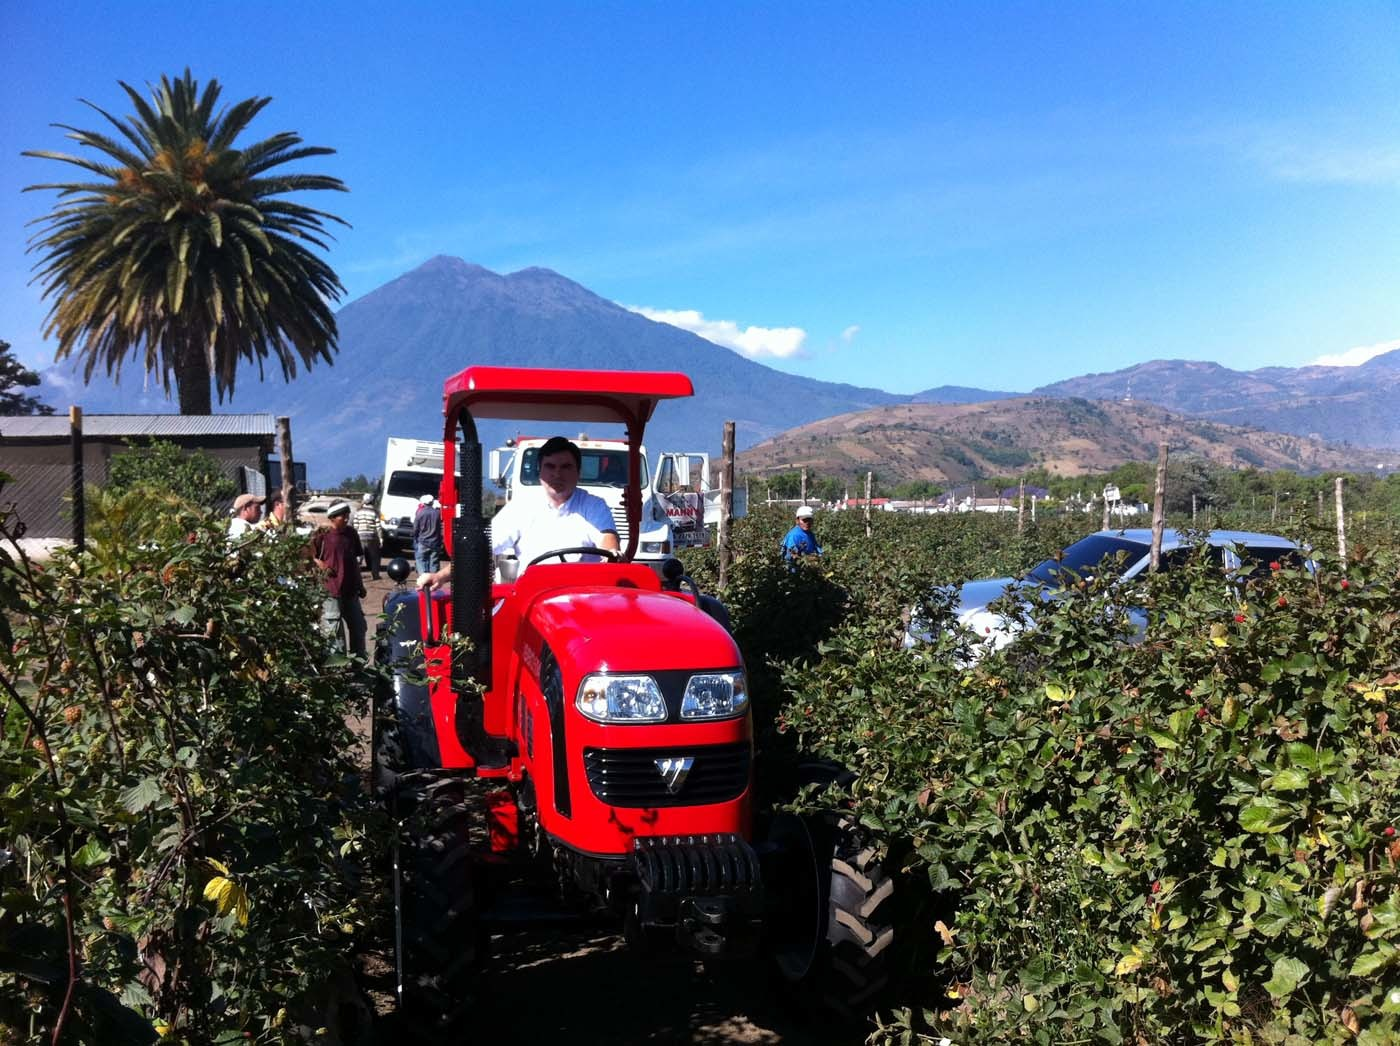 Lovol tractor working in a garden in Brazil